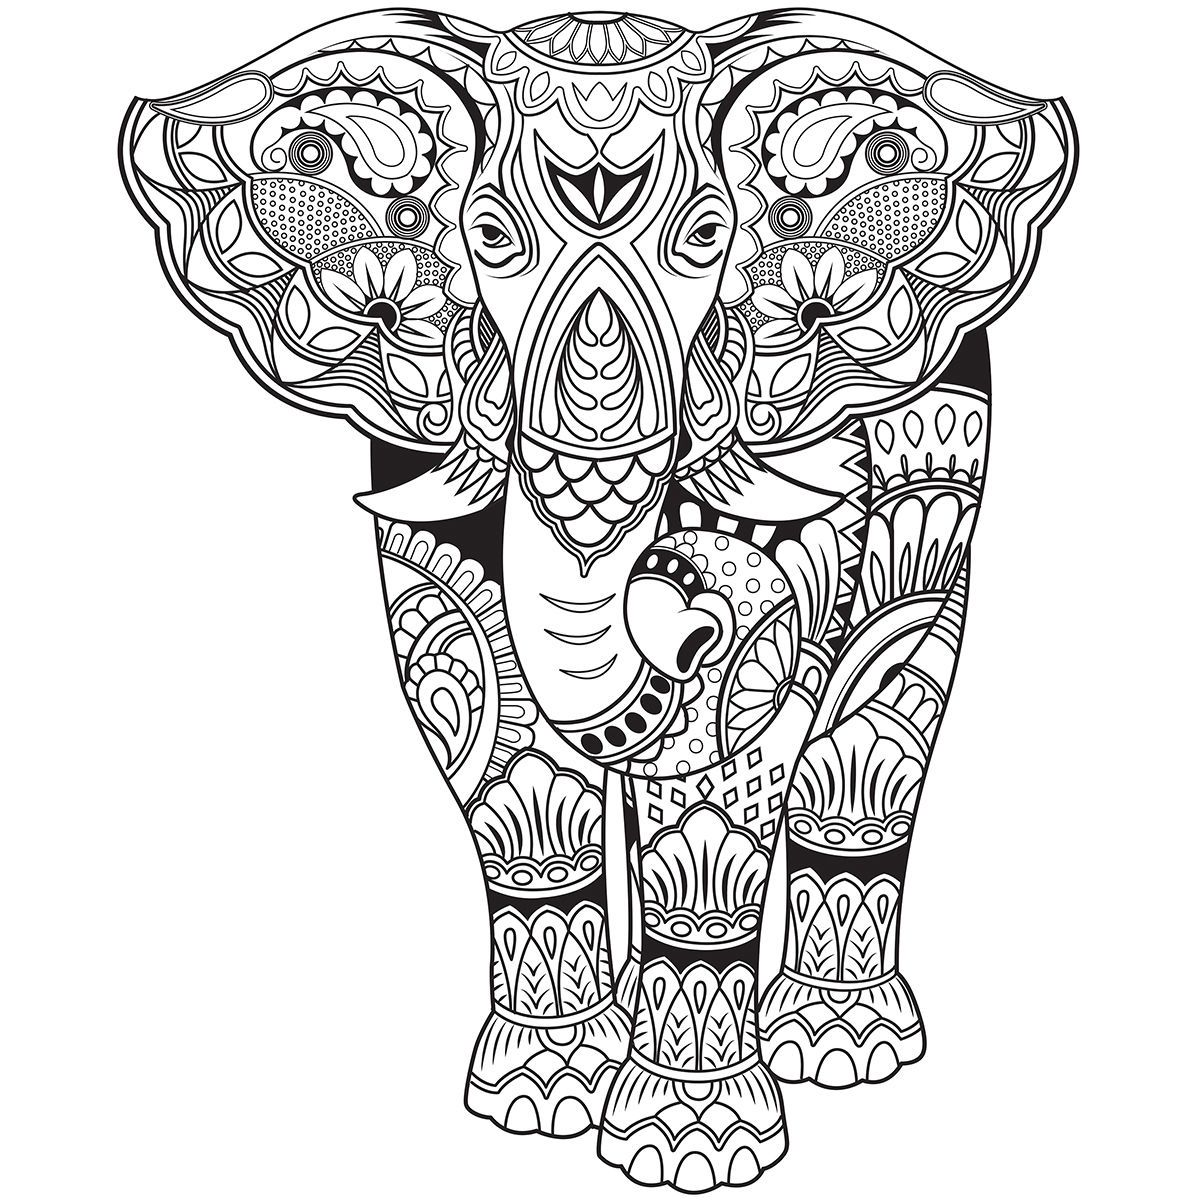 Zentangle Elefant Vorlage Elephant Zentangle Coloring Pages Doodles Zentangles